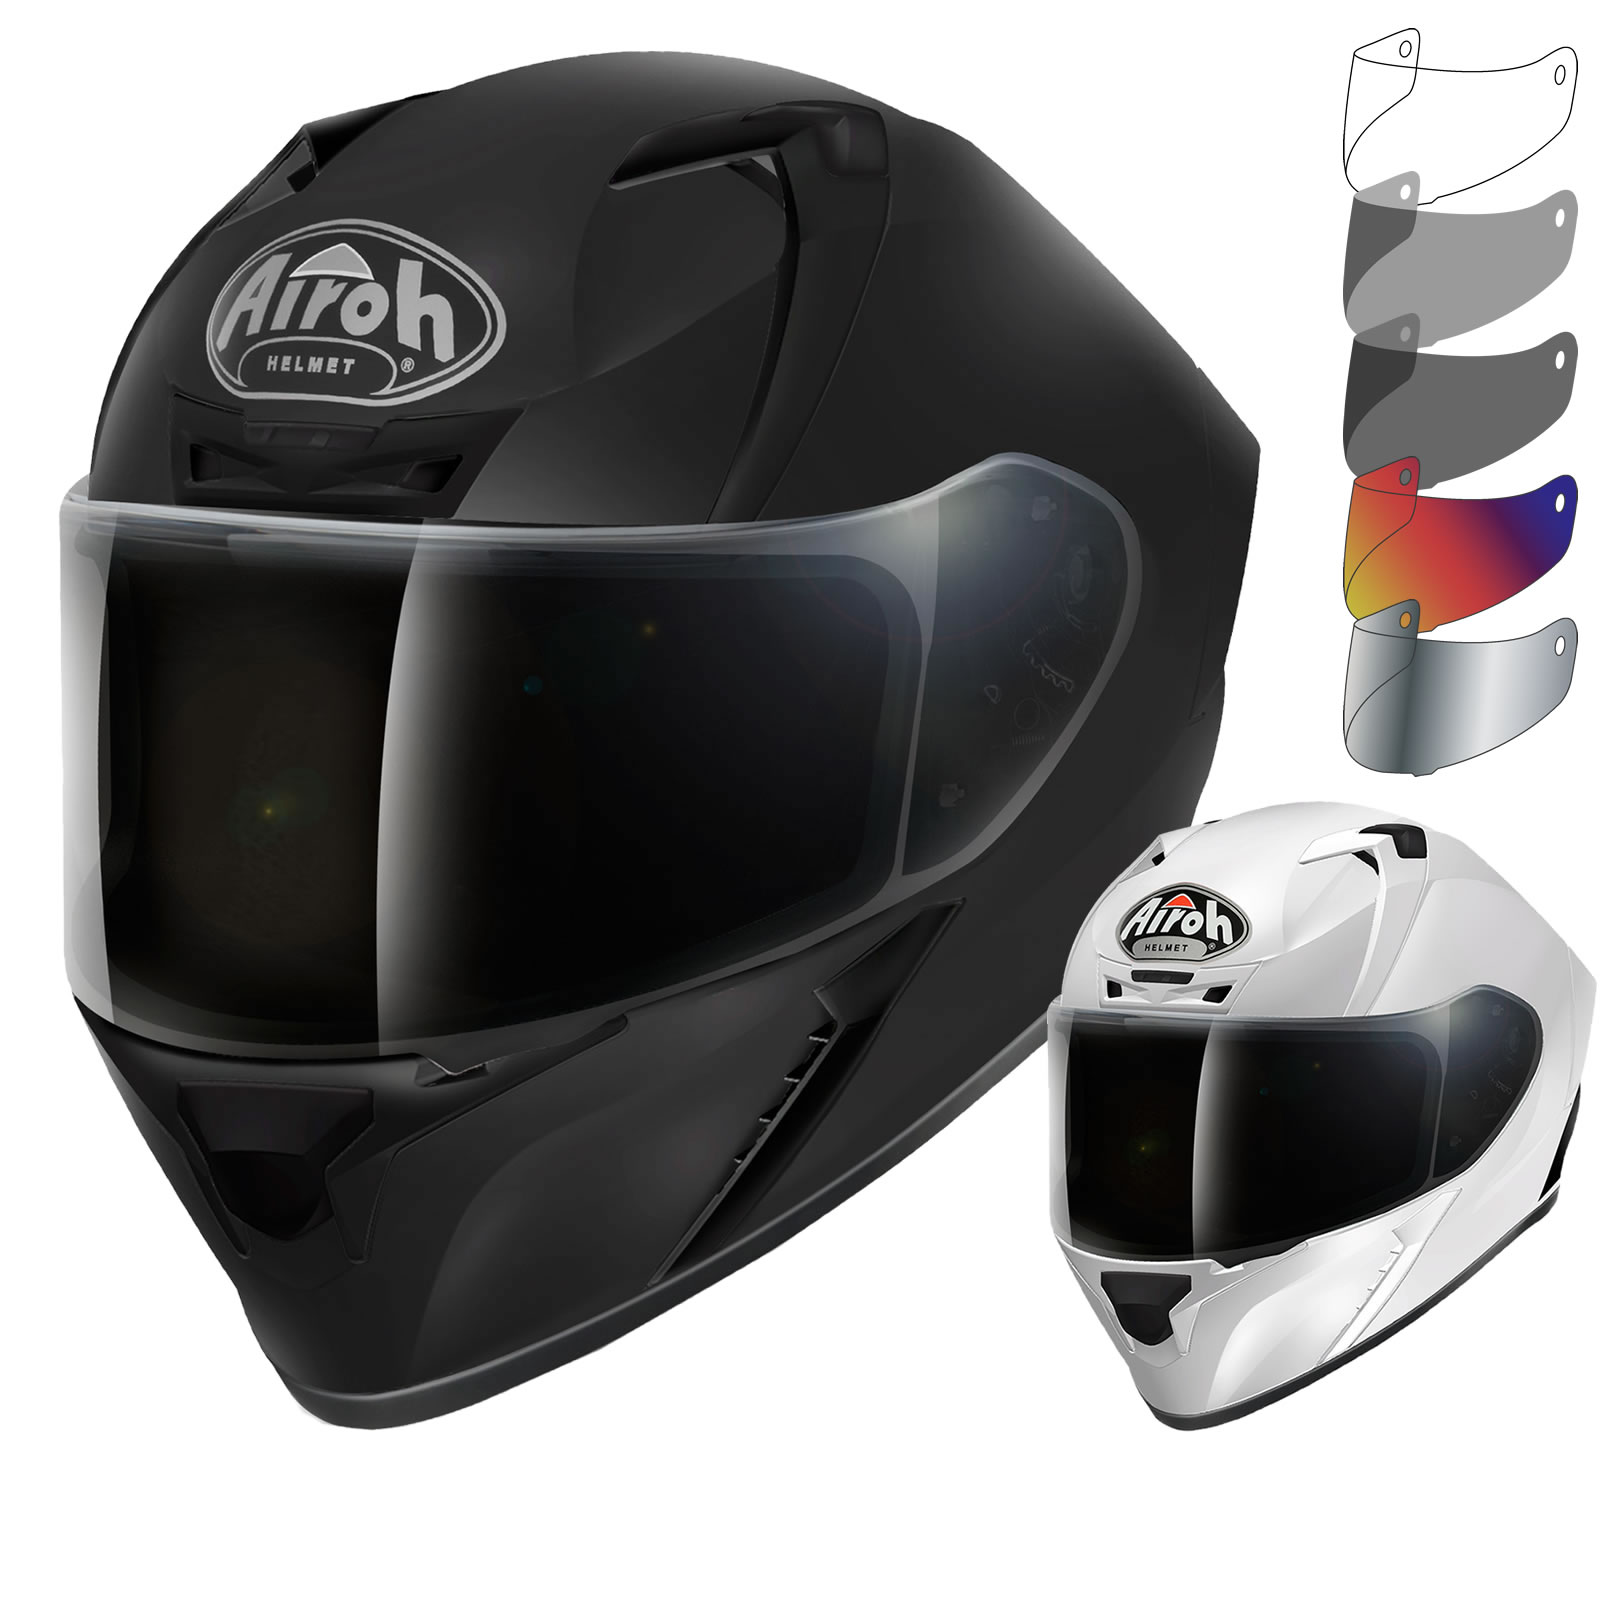 Airoh Valor Color Motorcycle Helmet & Visor New Arrivals